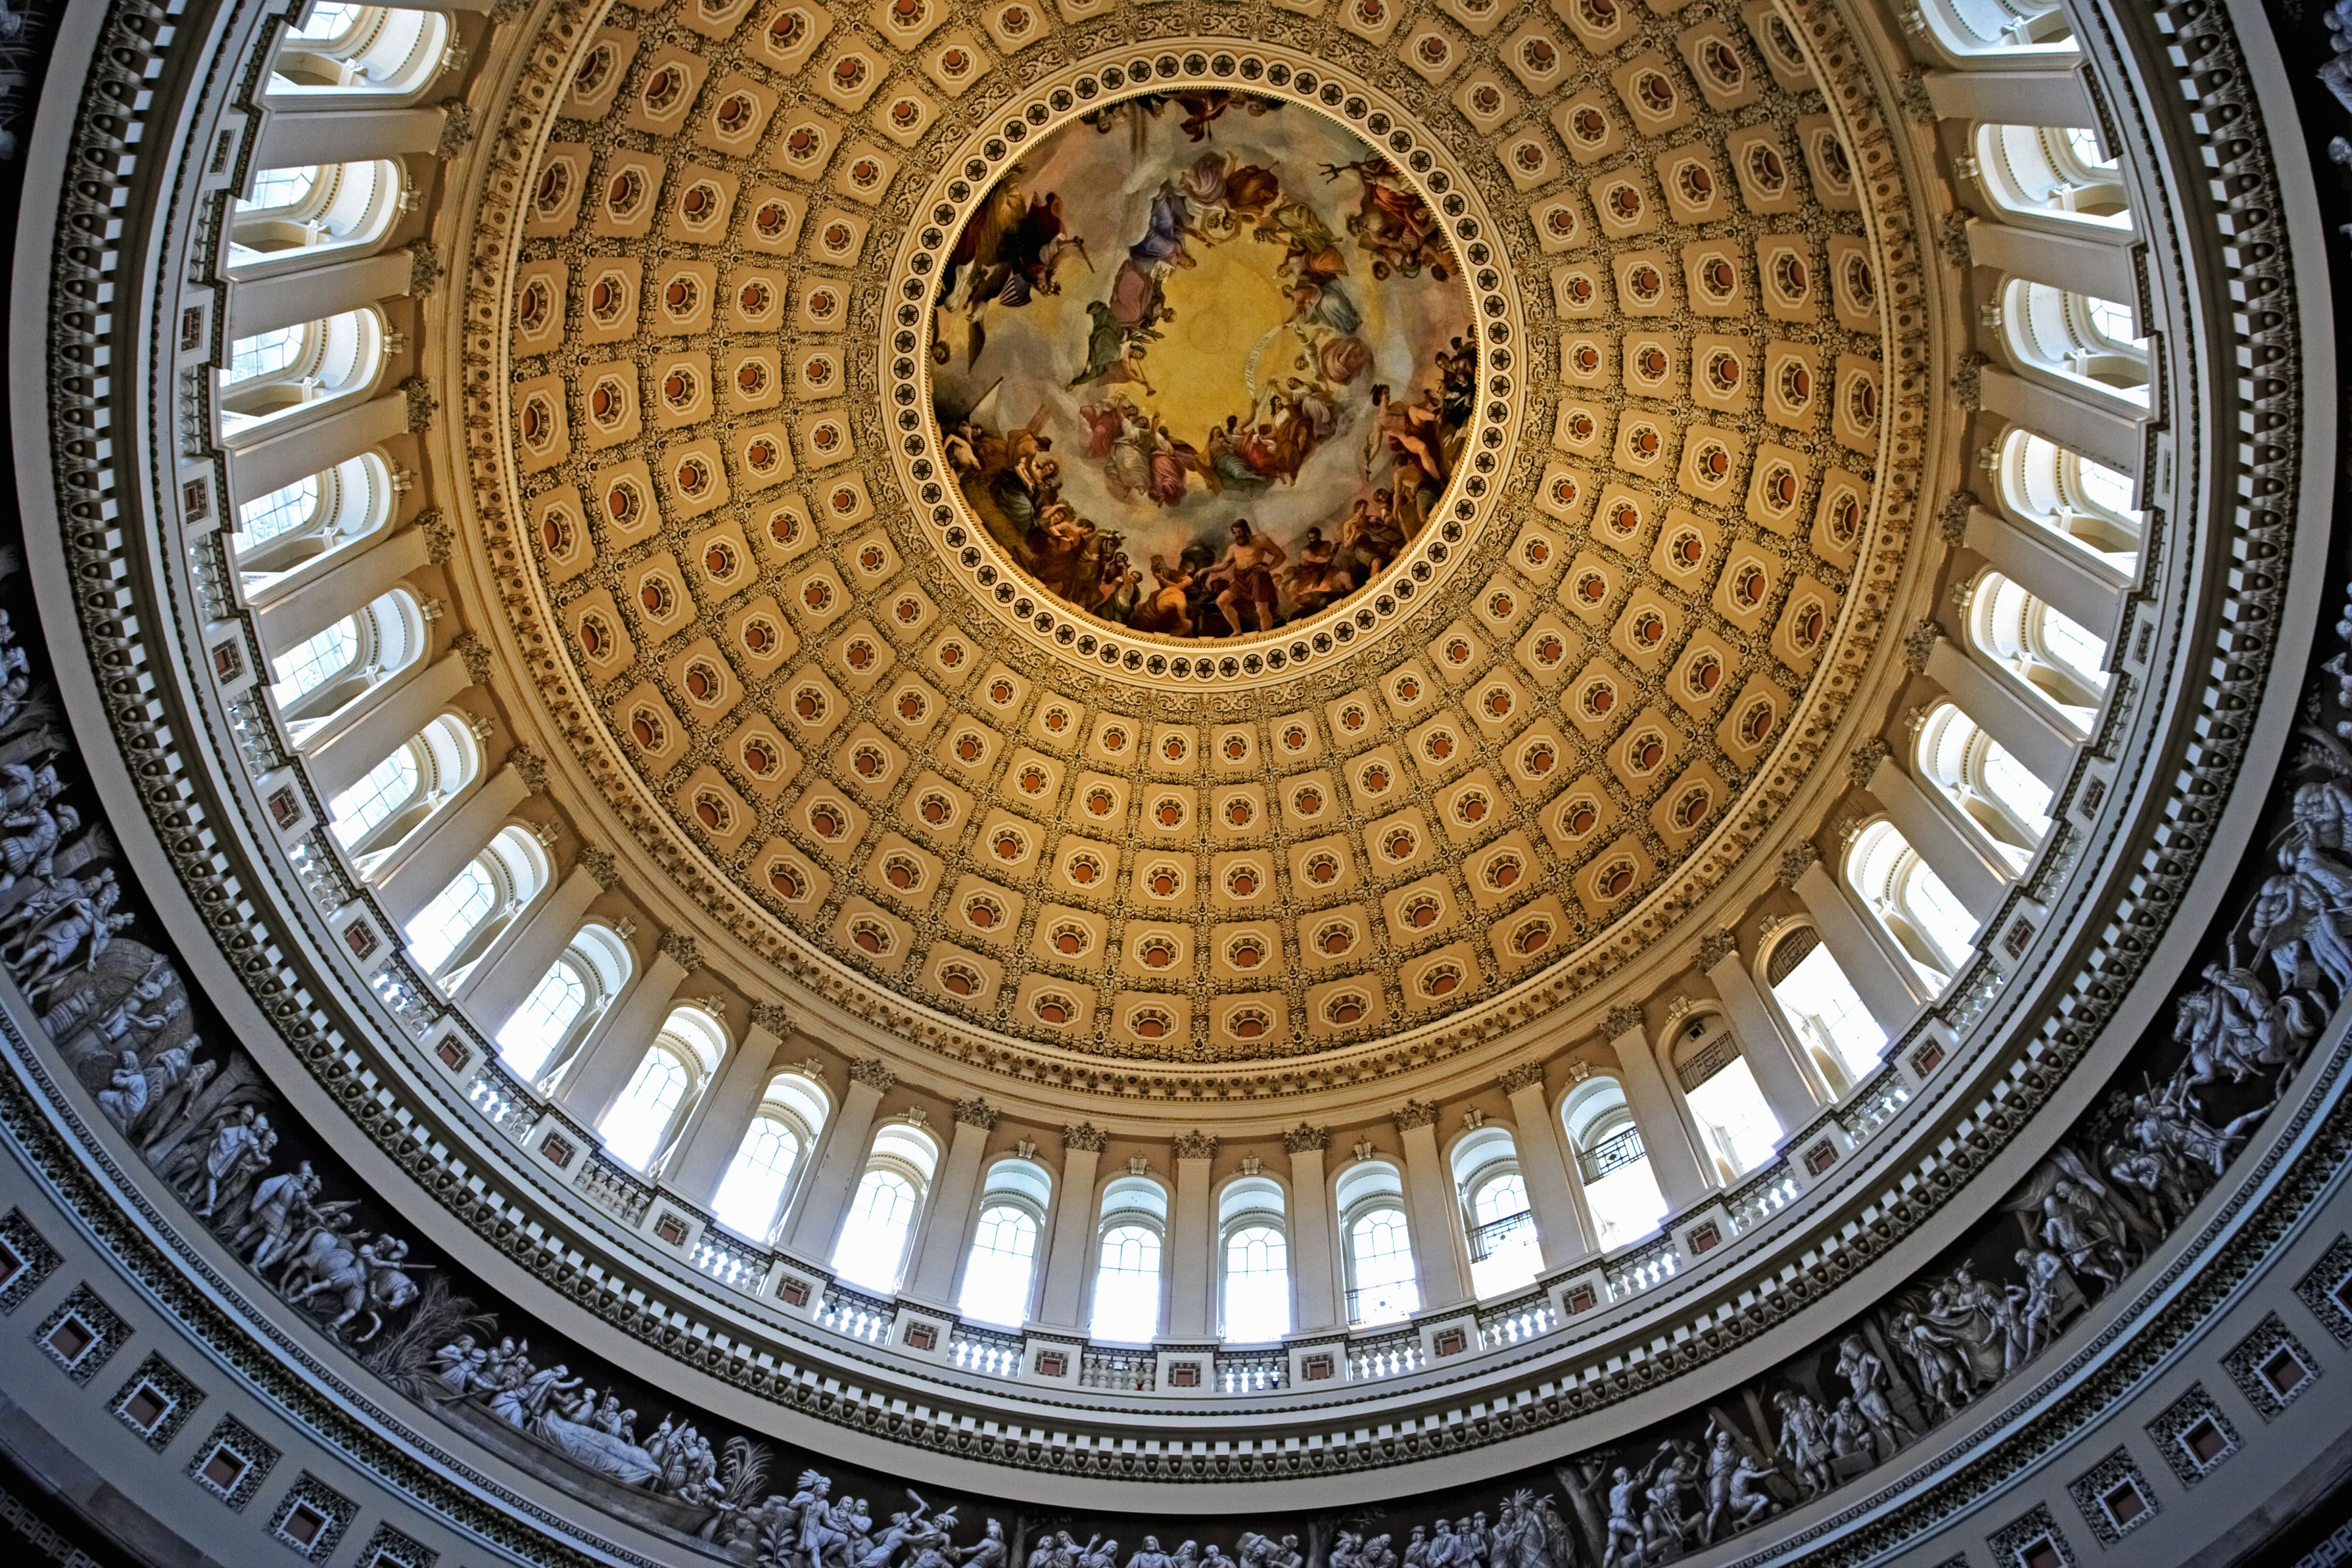 Interior view of the dome, U.S. Capitol Building